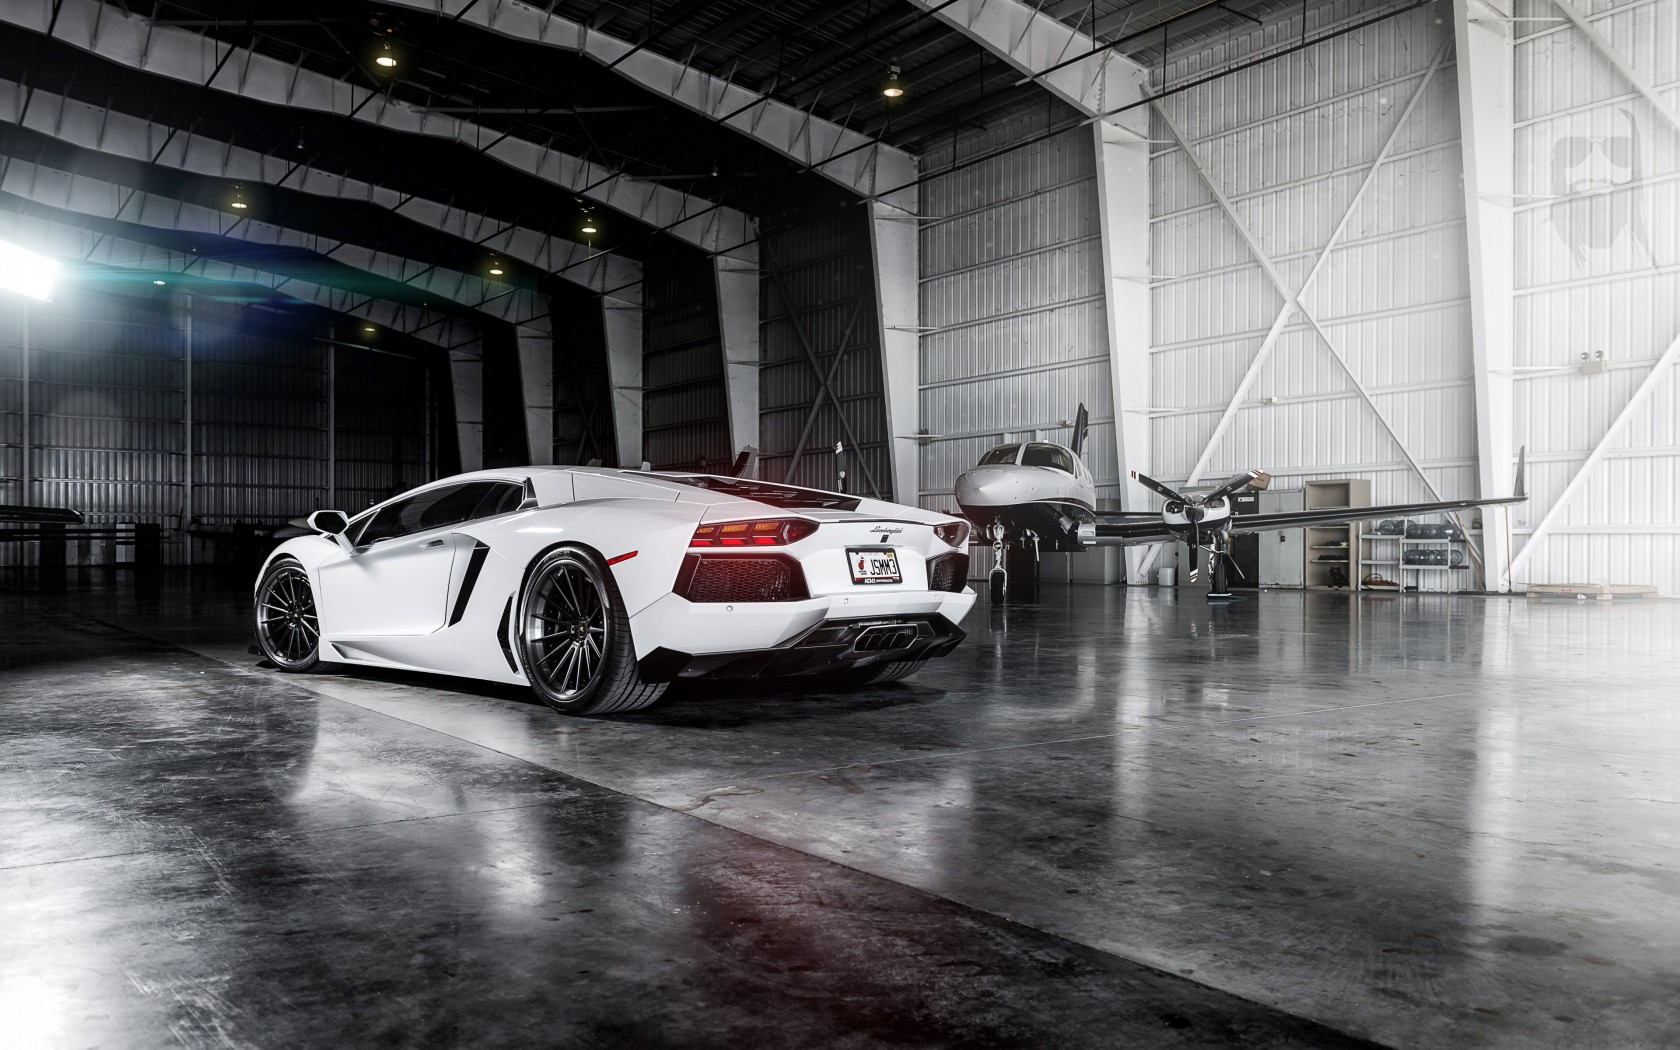 White Lamborghini Aventador Wallpaper for Desktop 1680x1050